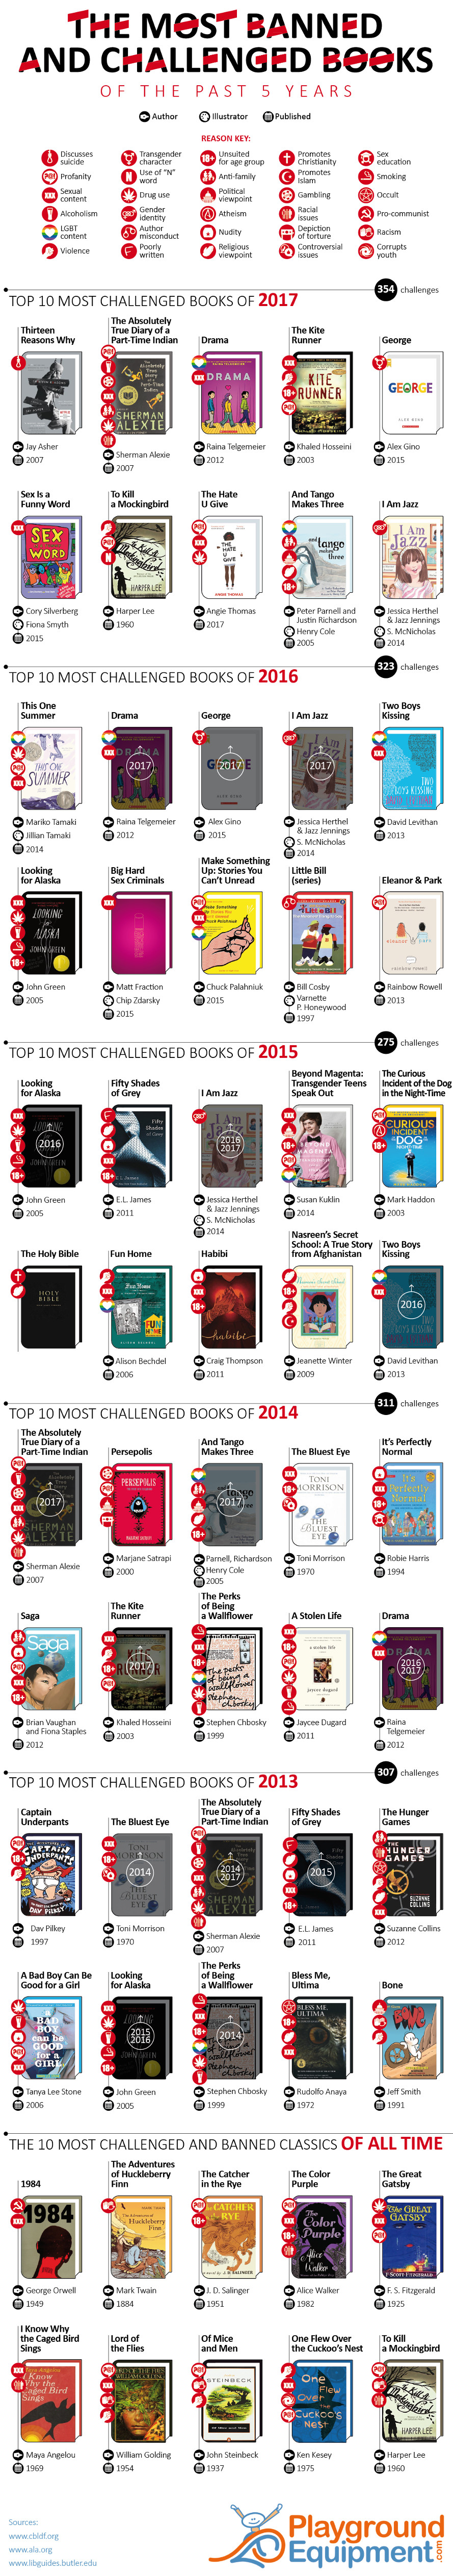 The Never-Ending Saga of Book Banning: Books Banned from 2013-2017 - Infographic